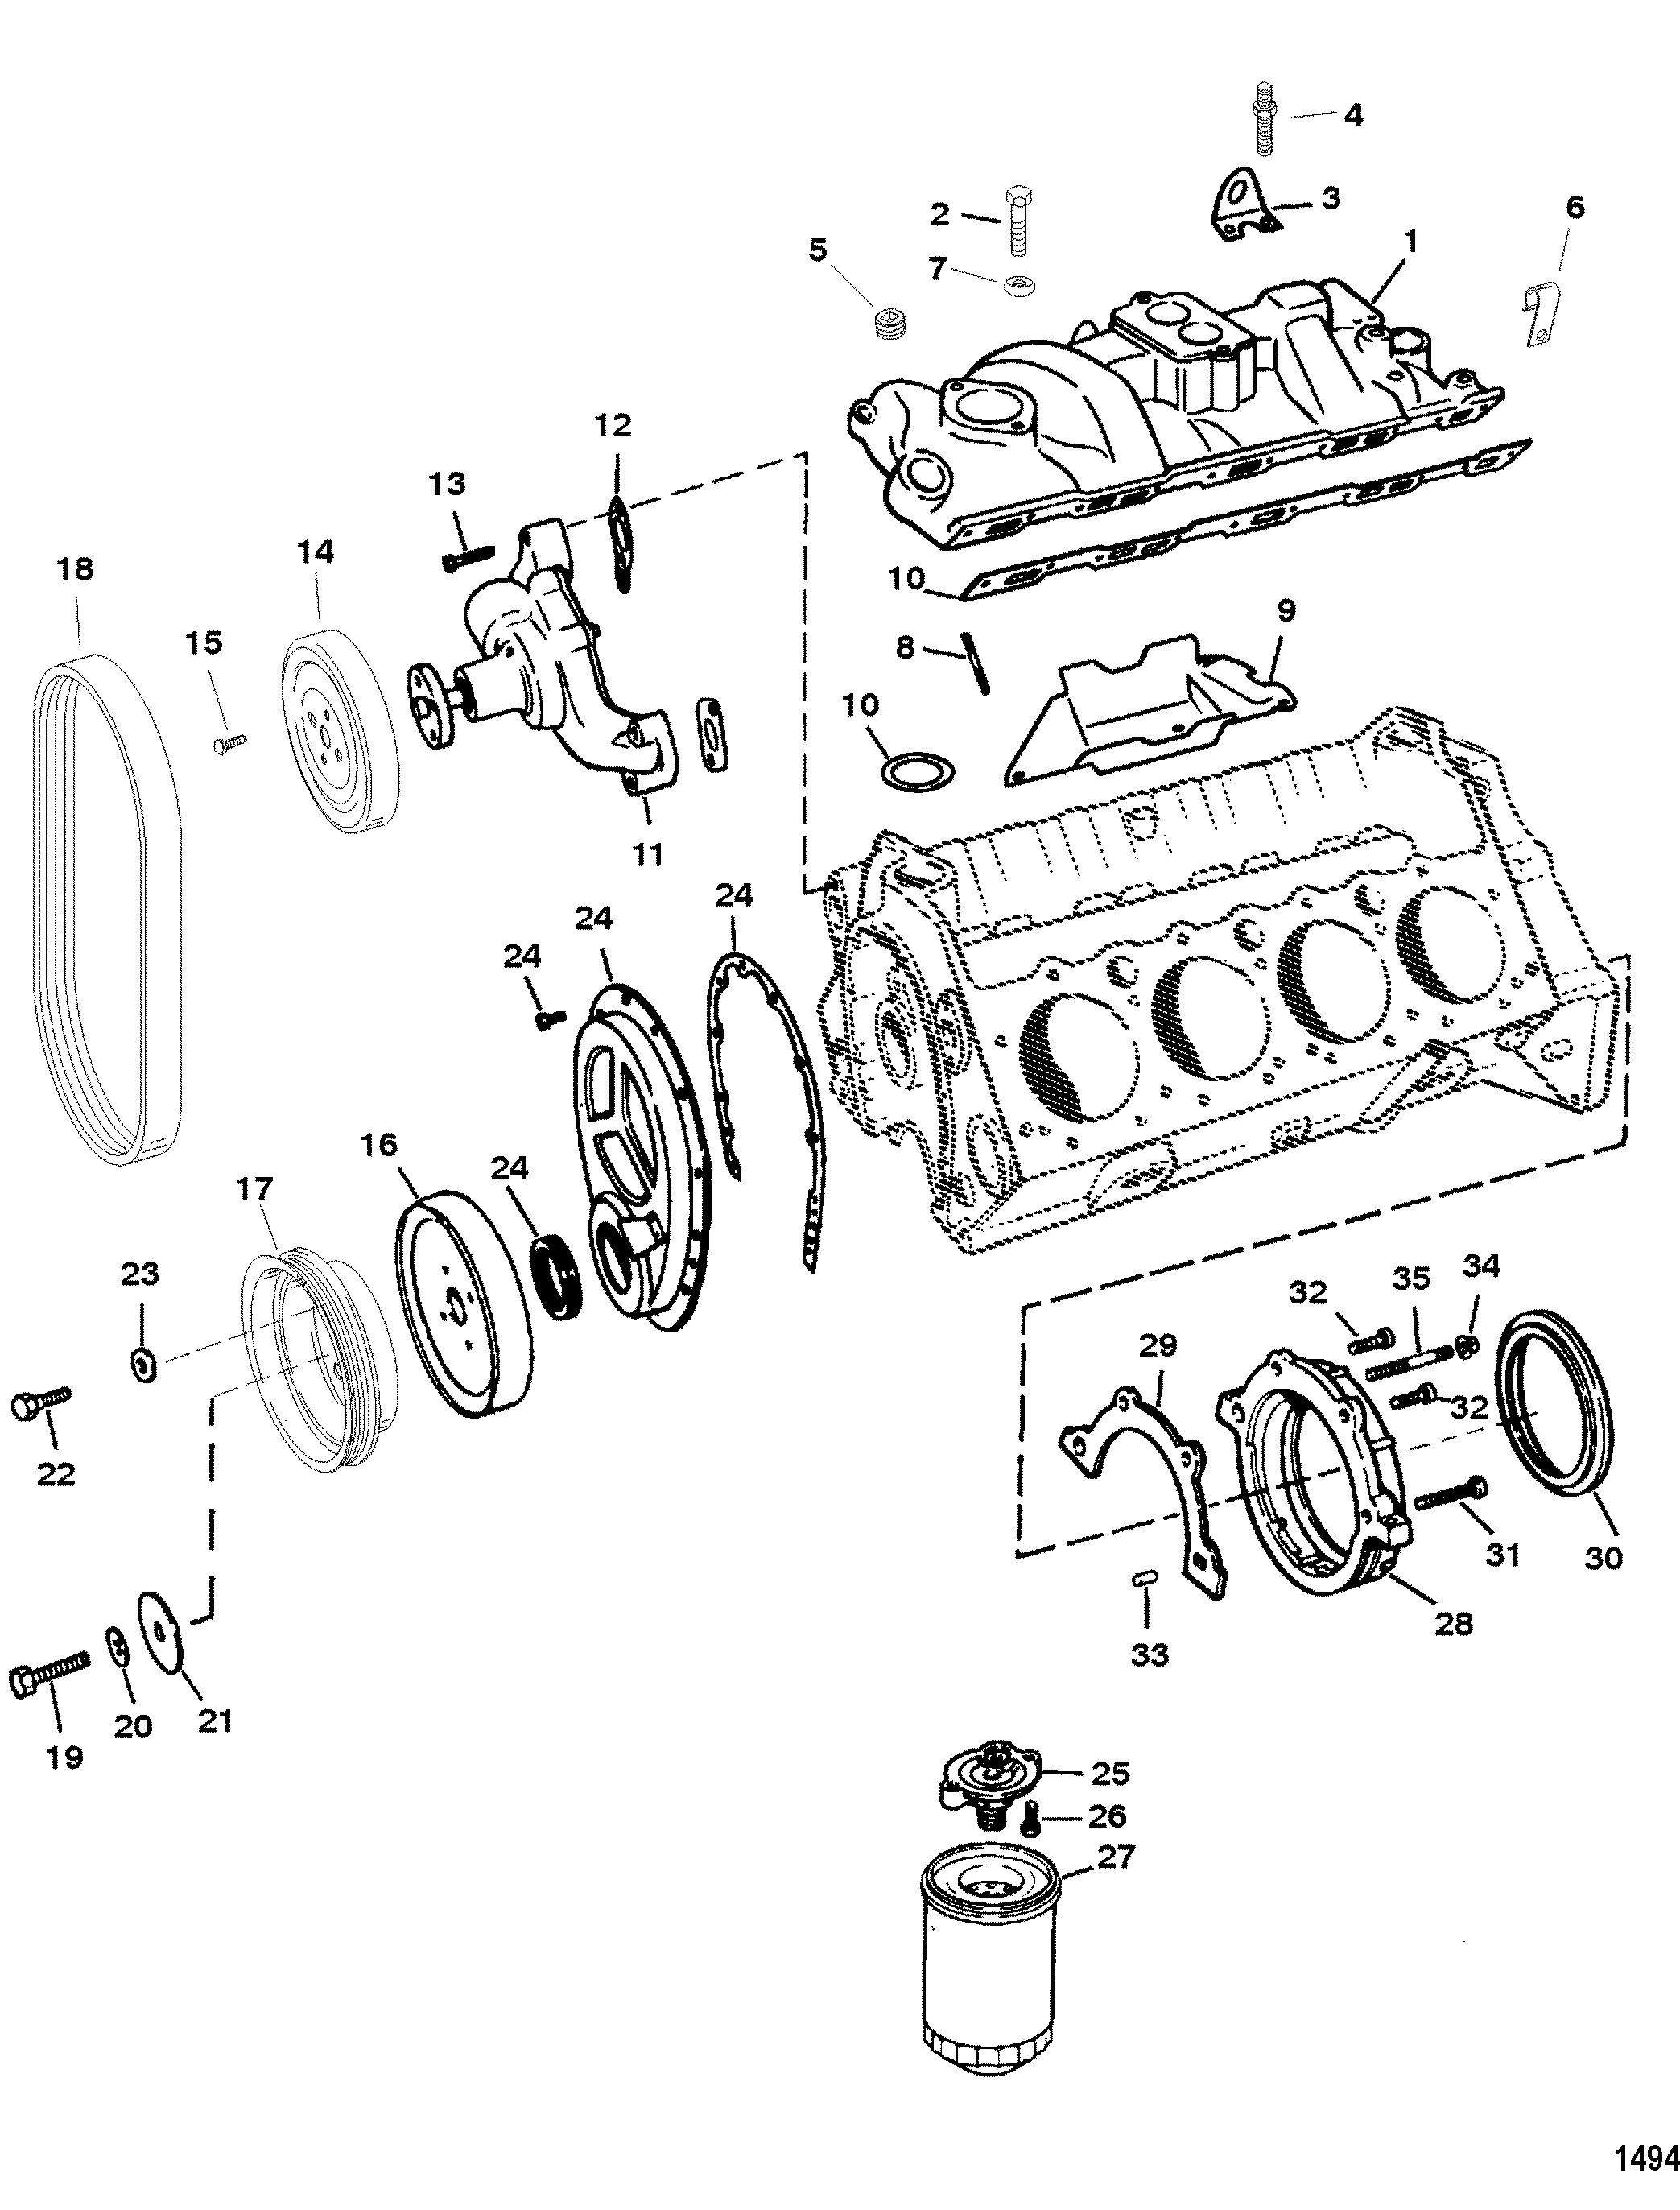 [NRIO_4796]   CP Performance - Intake Manifold And Front Cover   Gm 350 Intake Manifold To Engine Diagram      CP Performance